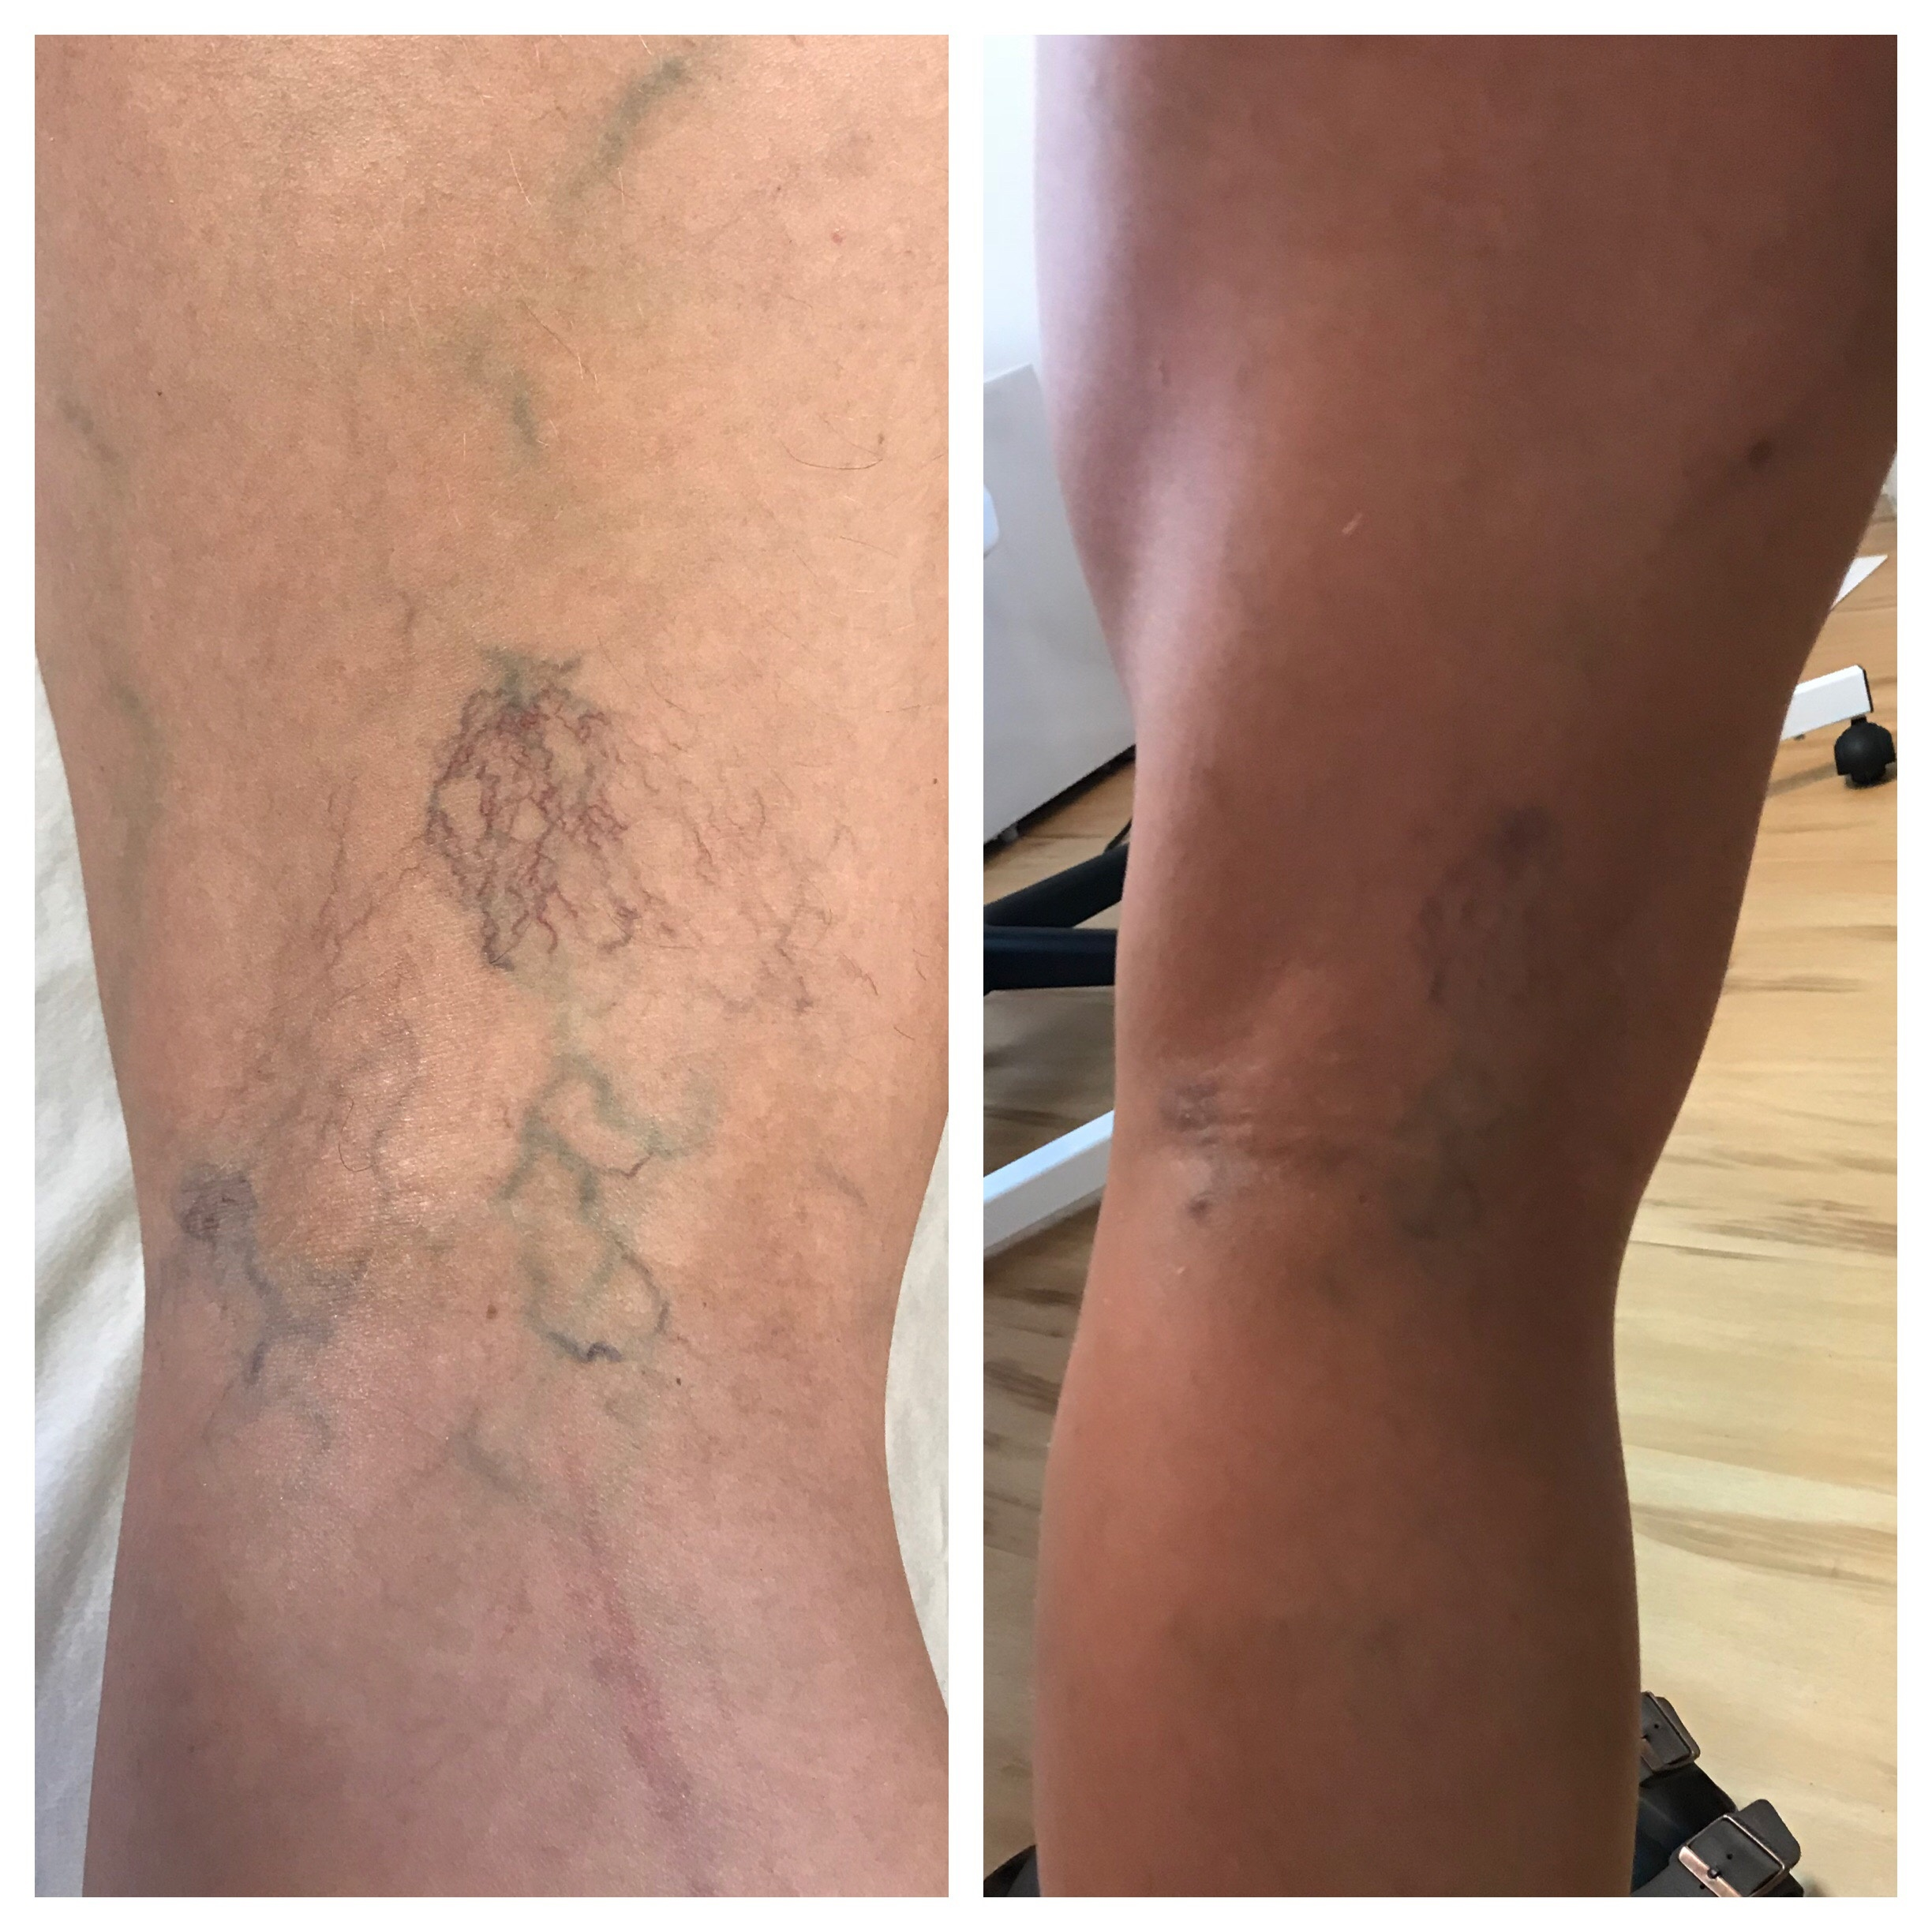 Before/After 1  Sclerotherapy treatment